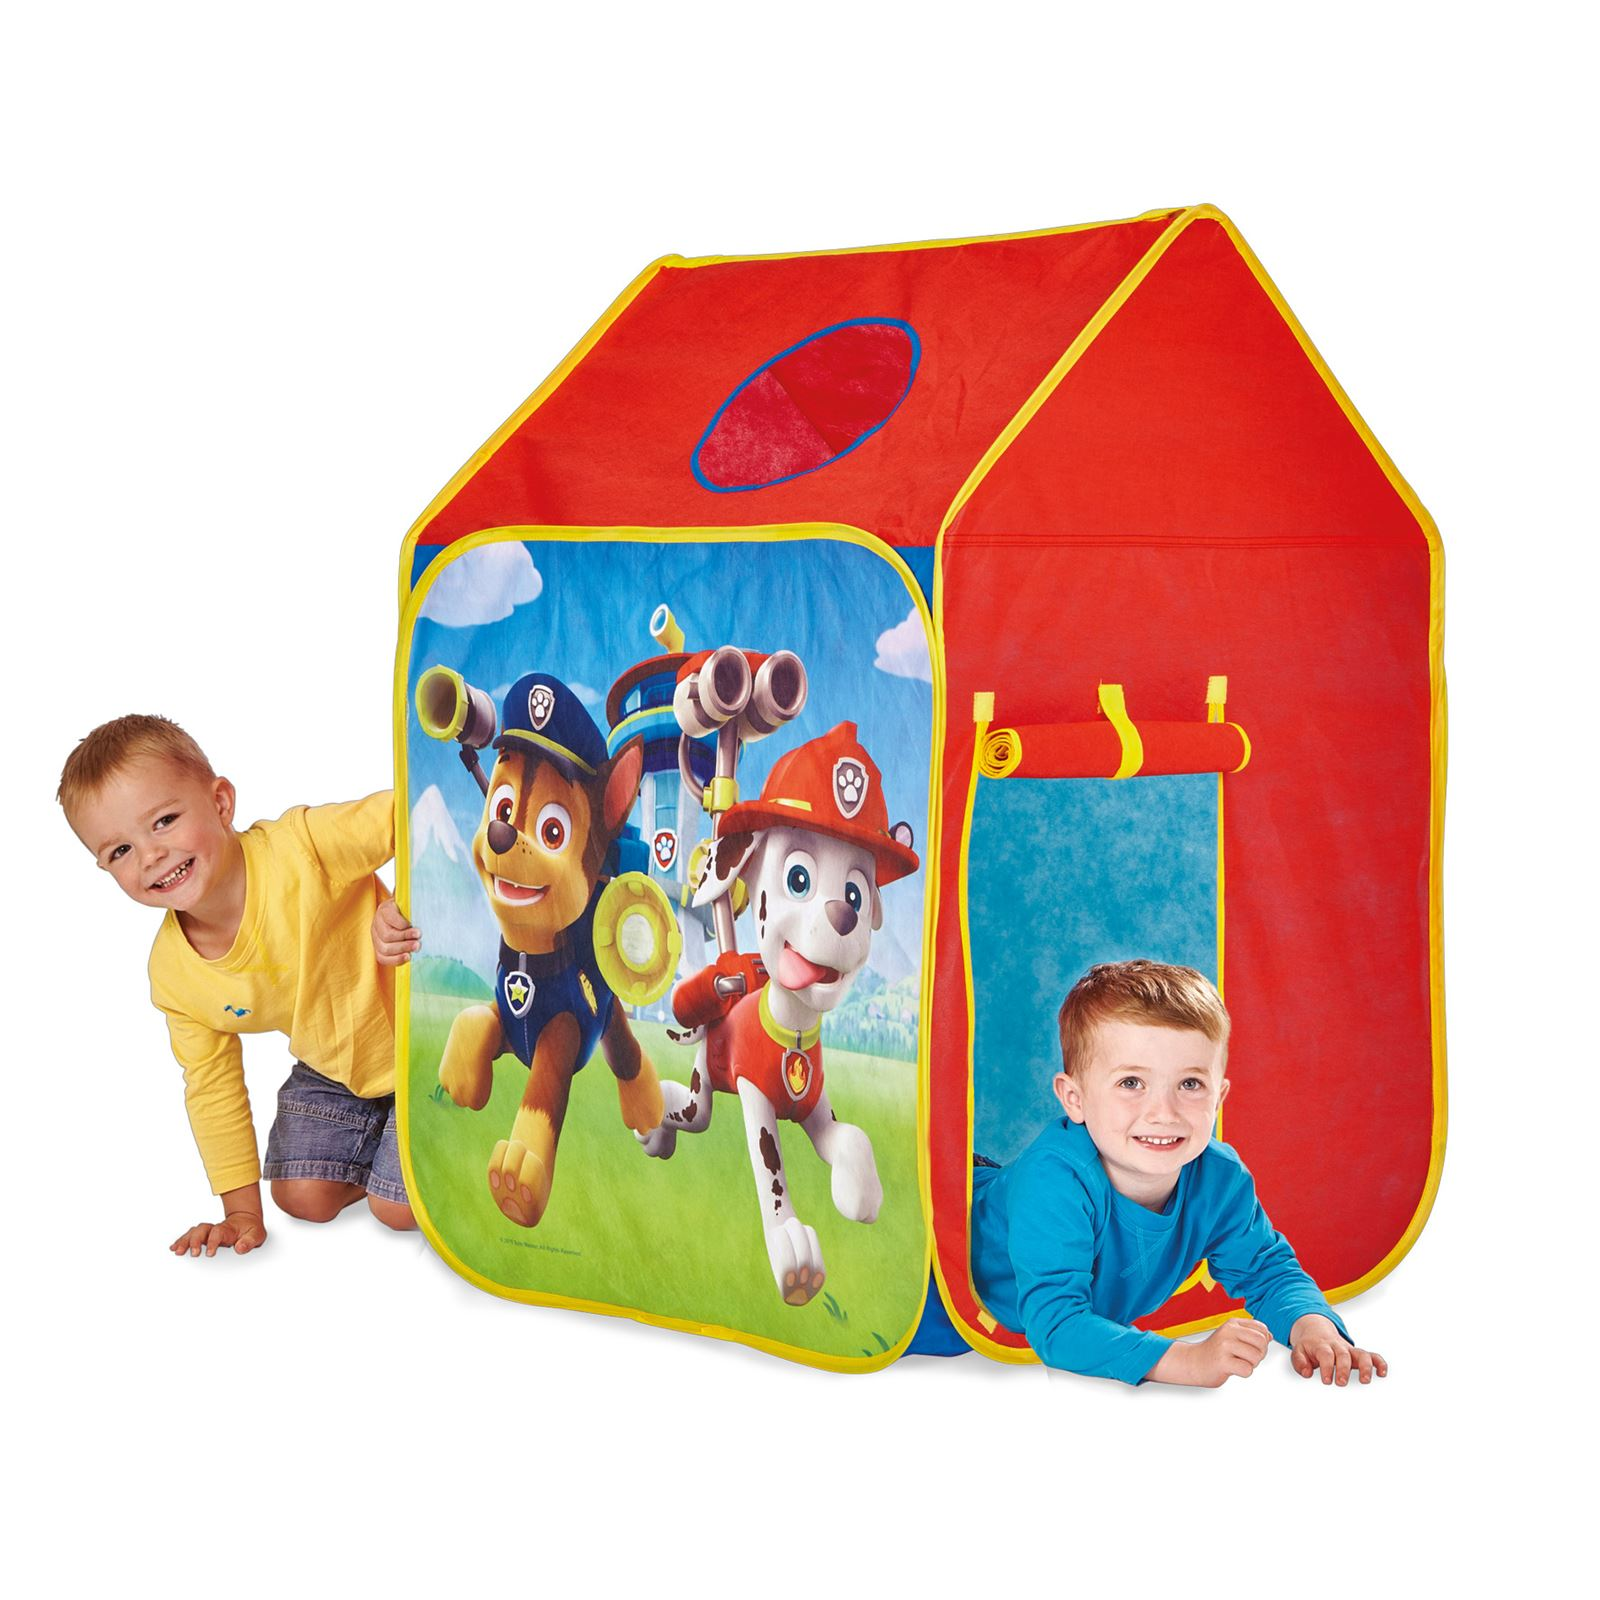 CHARACTER-PLAY-TENTS-PAW-PATROL-THOMAS-DISNEY-CARS-  sc 1 st  eBay & CHARACTER PLAY TENTS PAW PATROL THOMAS DISNEY CARS PEPPA PIG ...